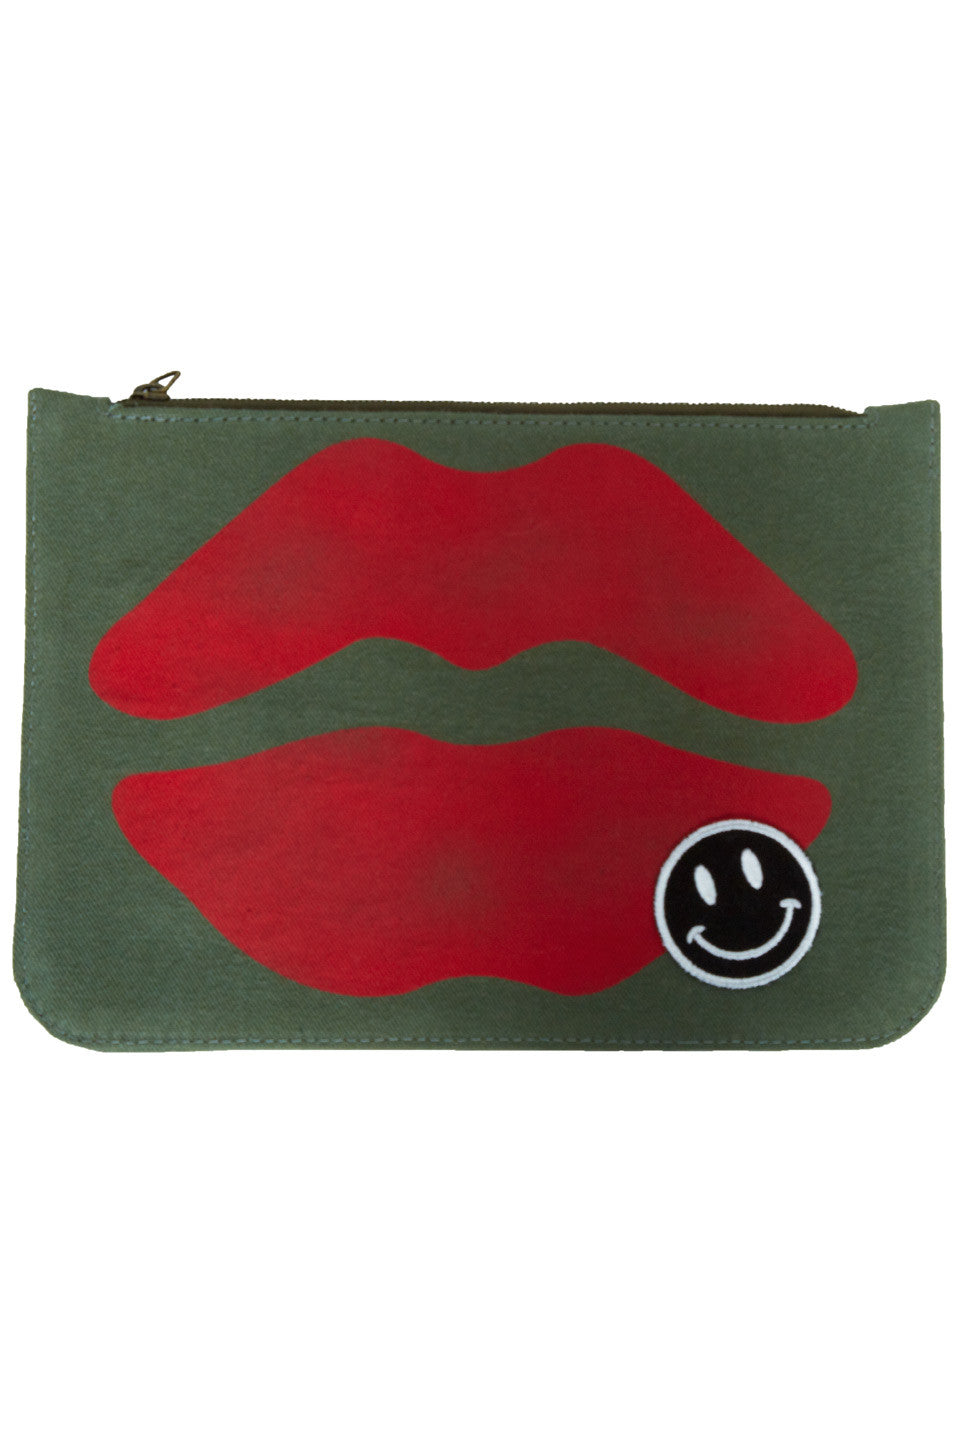 717a49f8c3f Lauren Moshi Lusha Red Airbrush Mouth w/Patch Luxury Clutch in Military